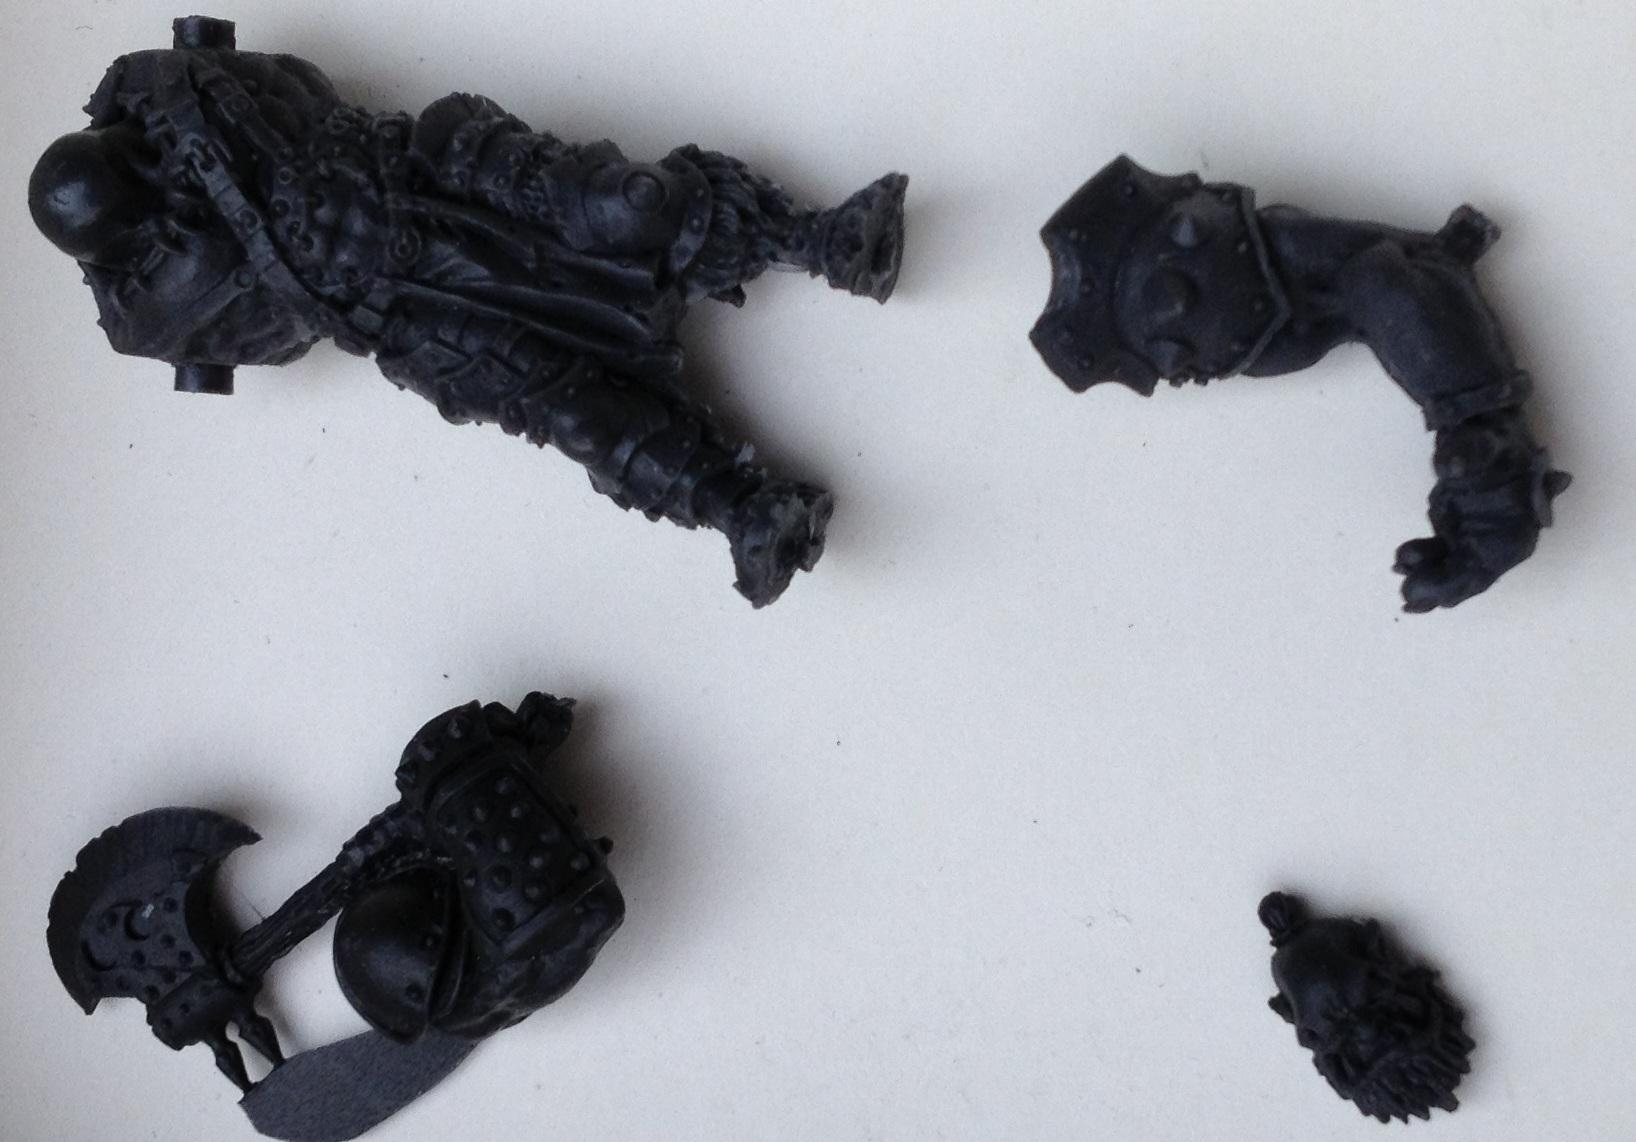 KoW limited Resin ogre components front